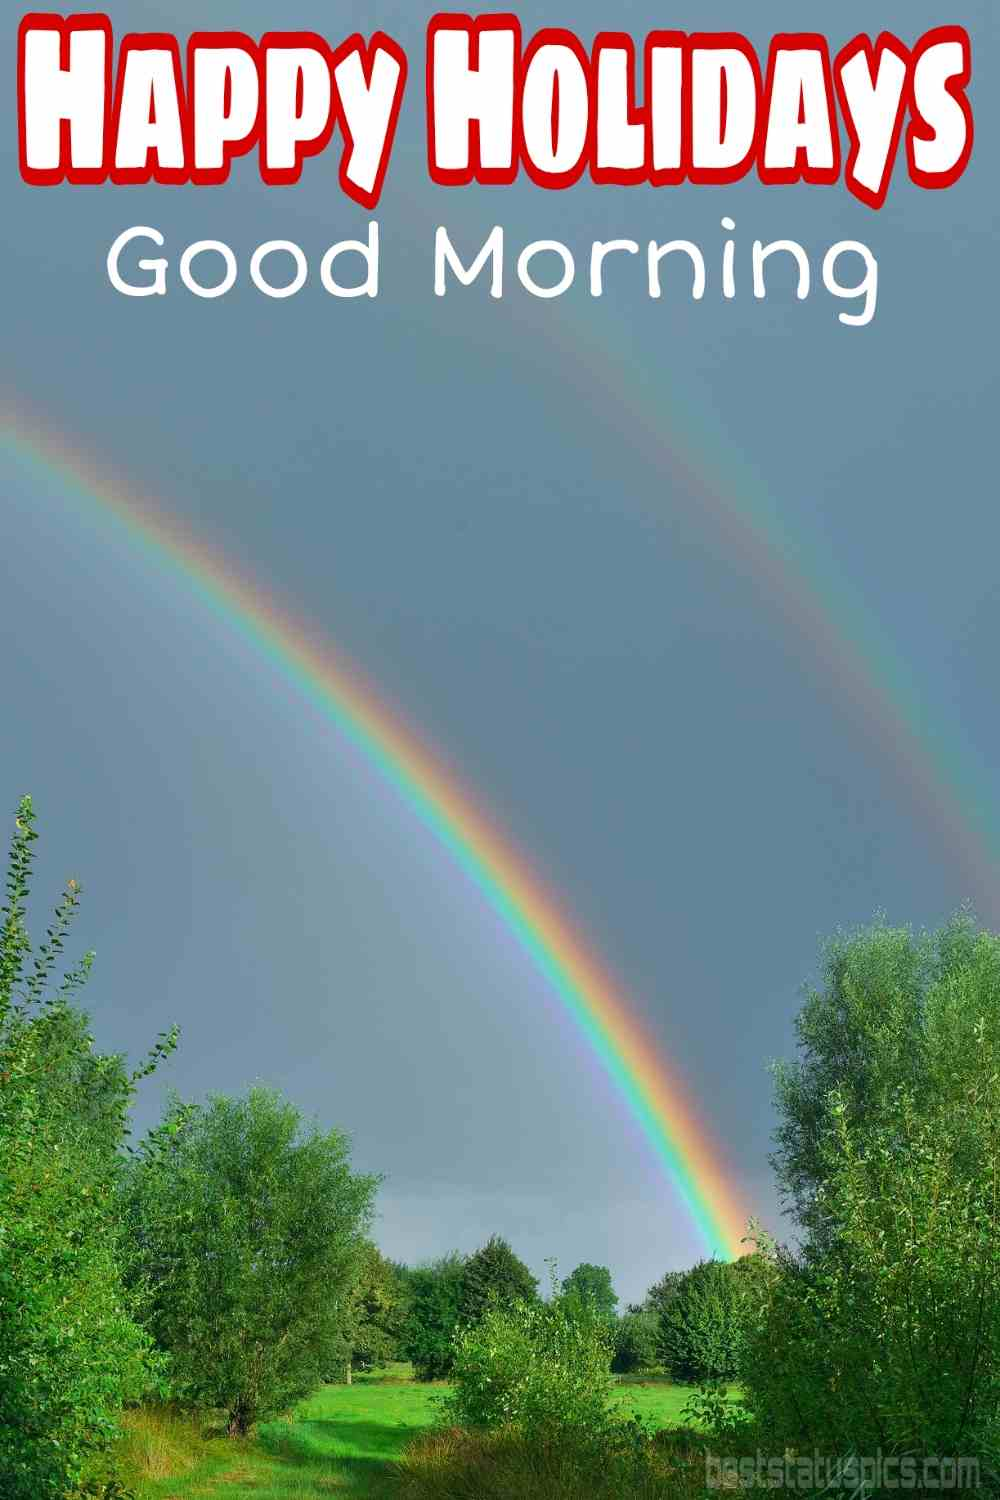 Good morning happy holidays 2022 wishes picture HD with sky, tree and rainbow for Pinterest